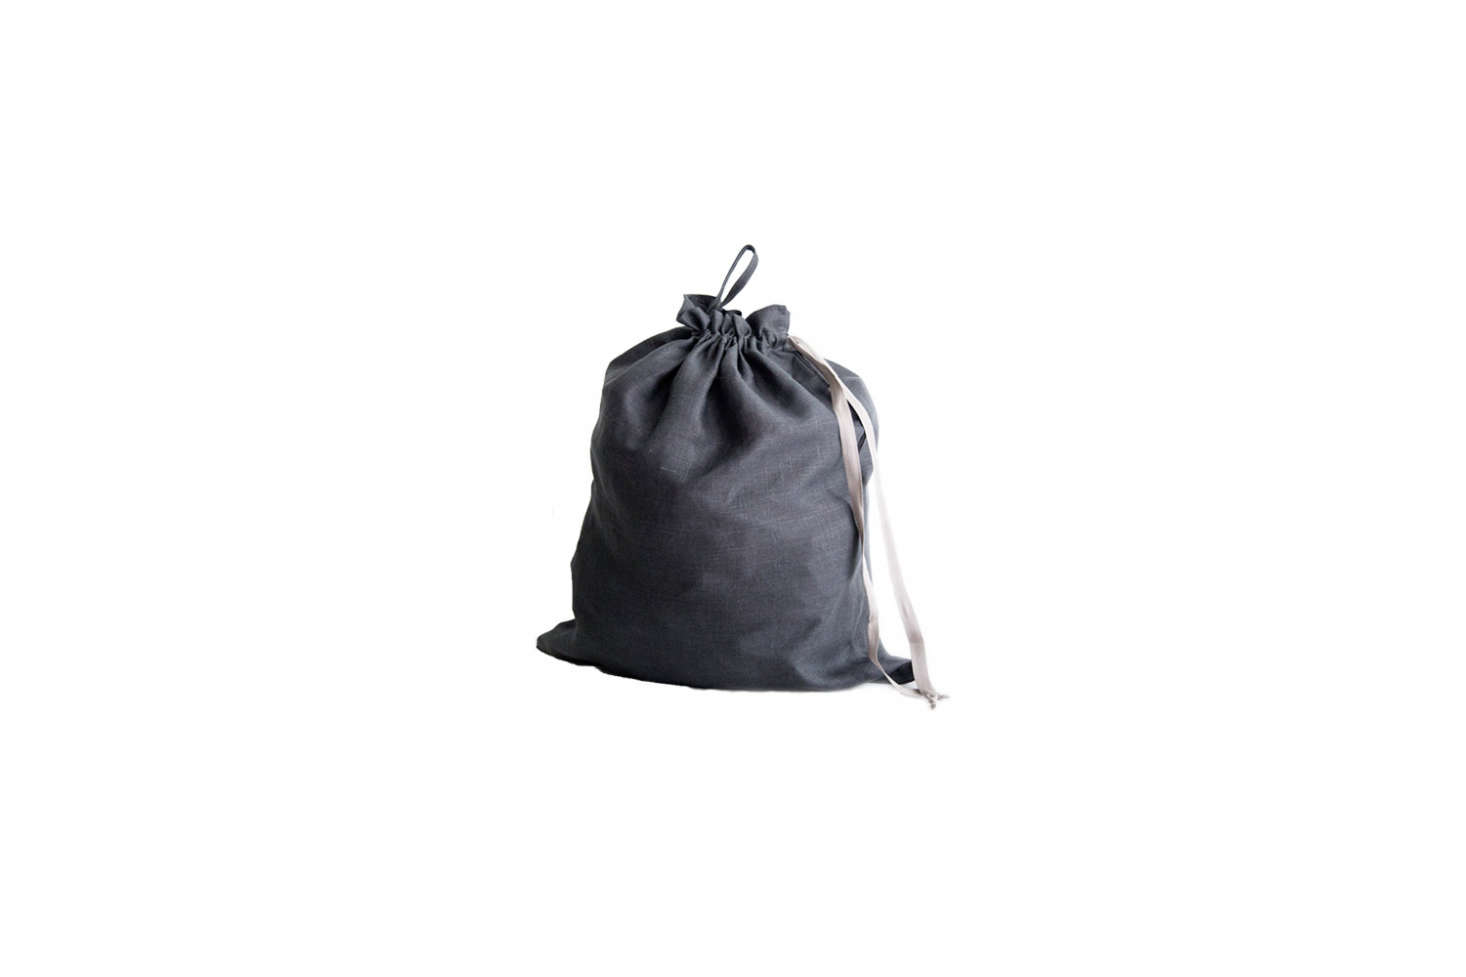 Source a linen drawstring bag from Etsy, like the Large Linen Laundry Bag(shown) in dark gray for $4